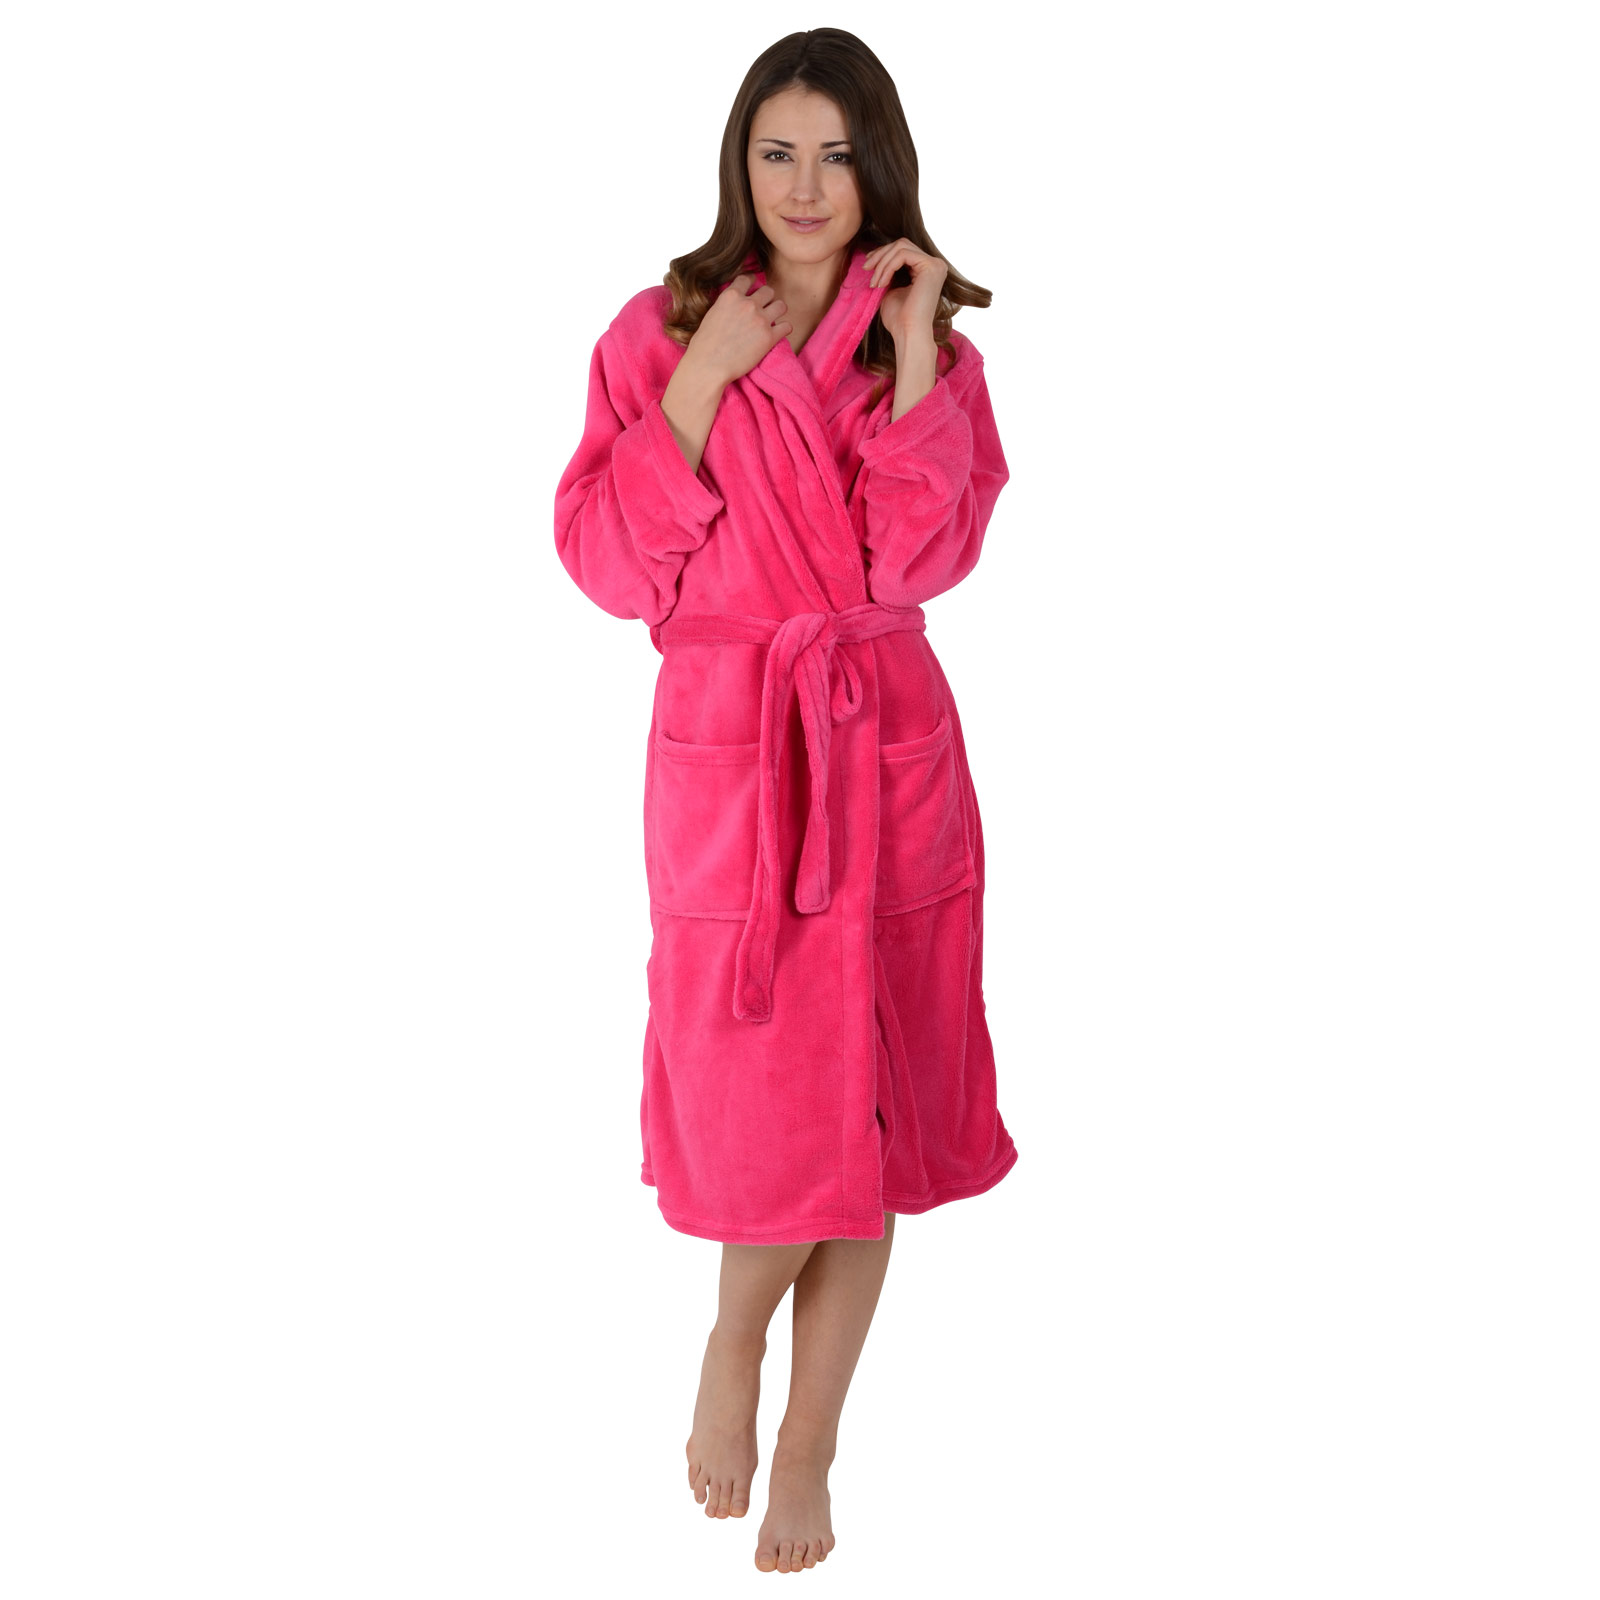 Online shopping for Dressing Gowns from a great selection at Clothing Store.